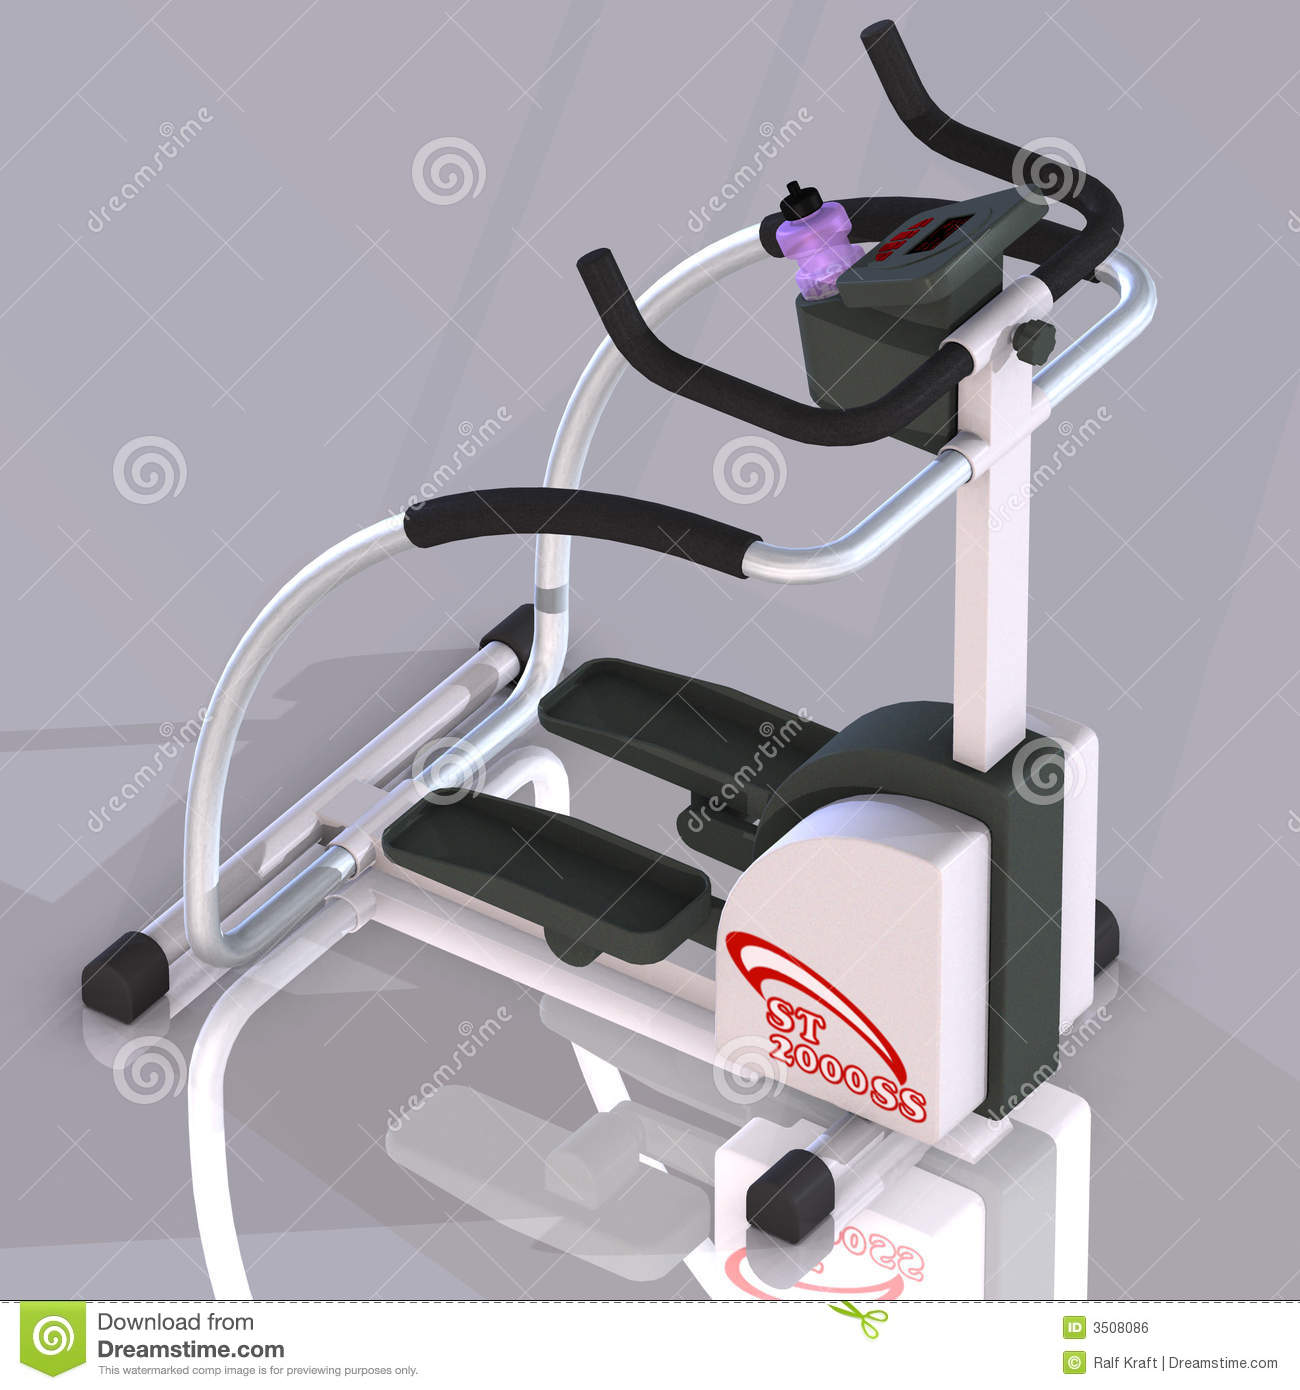 Fitness Machine Stepper Royalty Free Stock Image